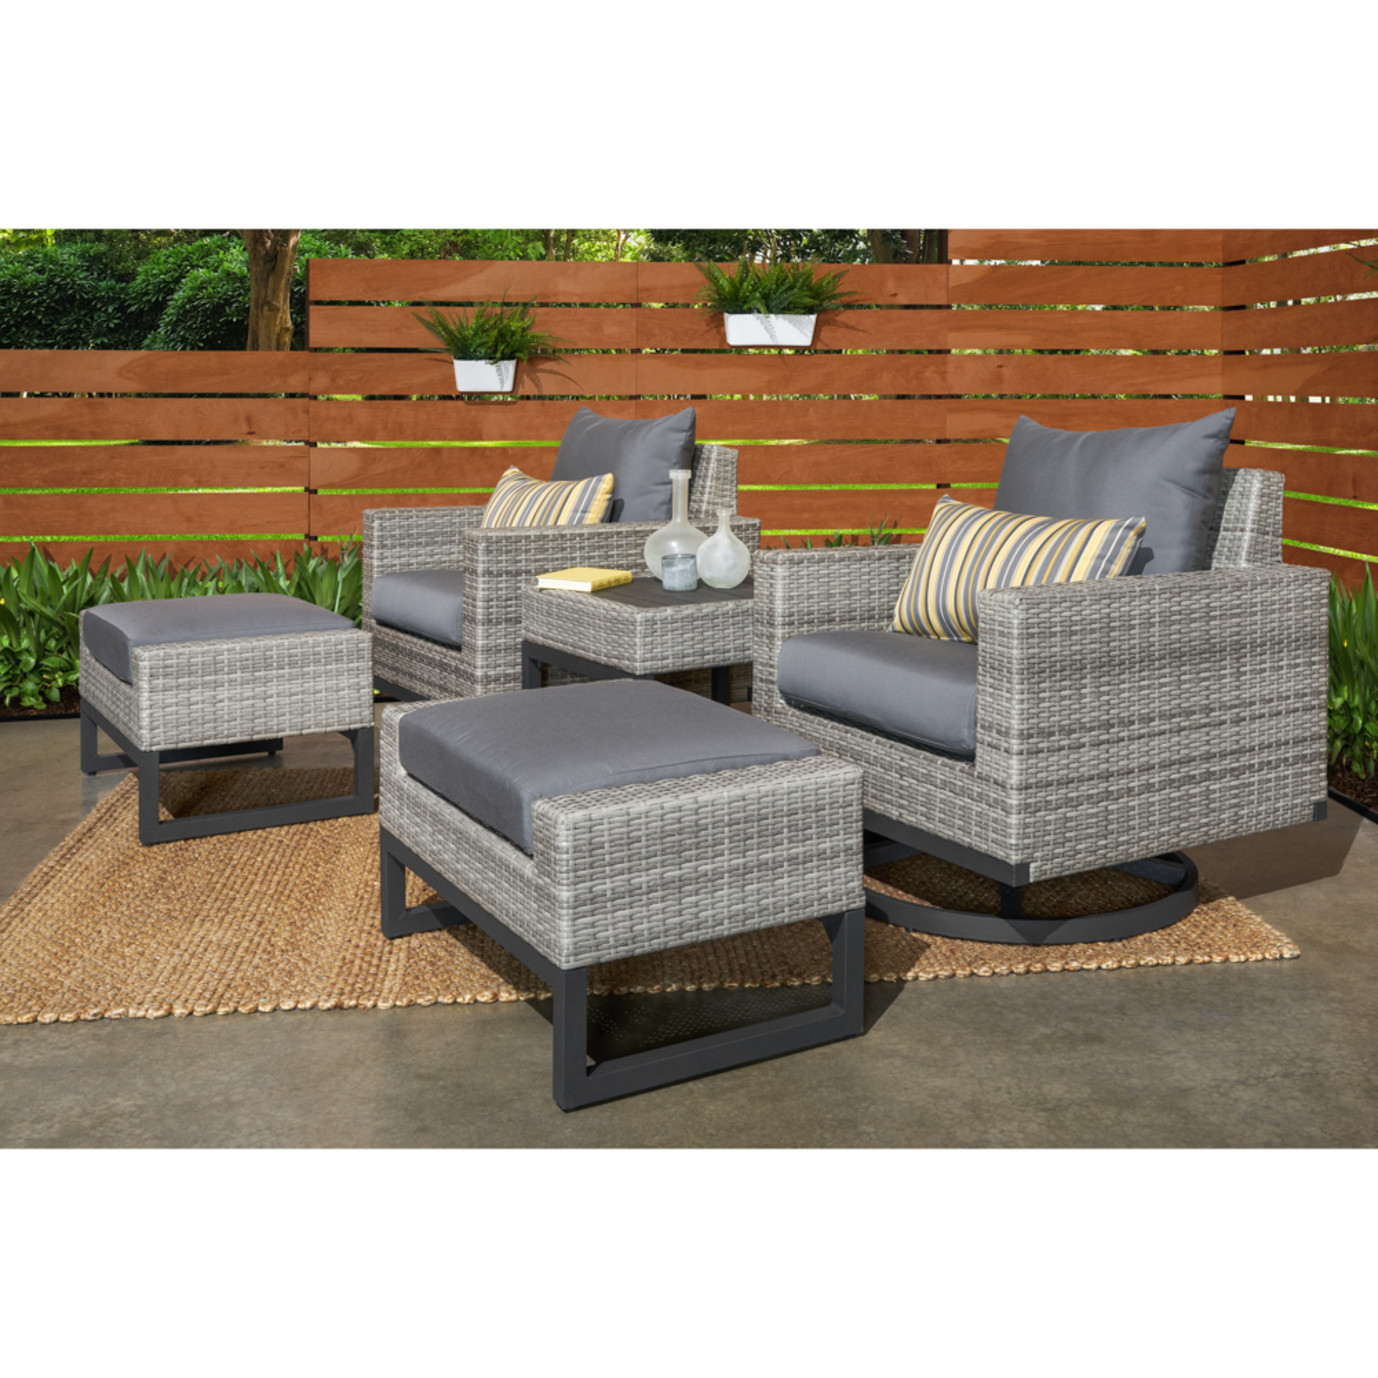 Milo™ Gray 5 Piece Motion Club Set - Charcoal Gray